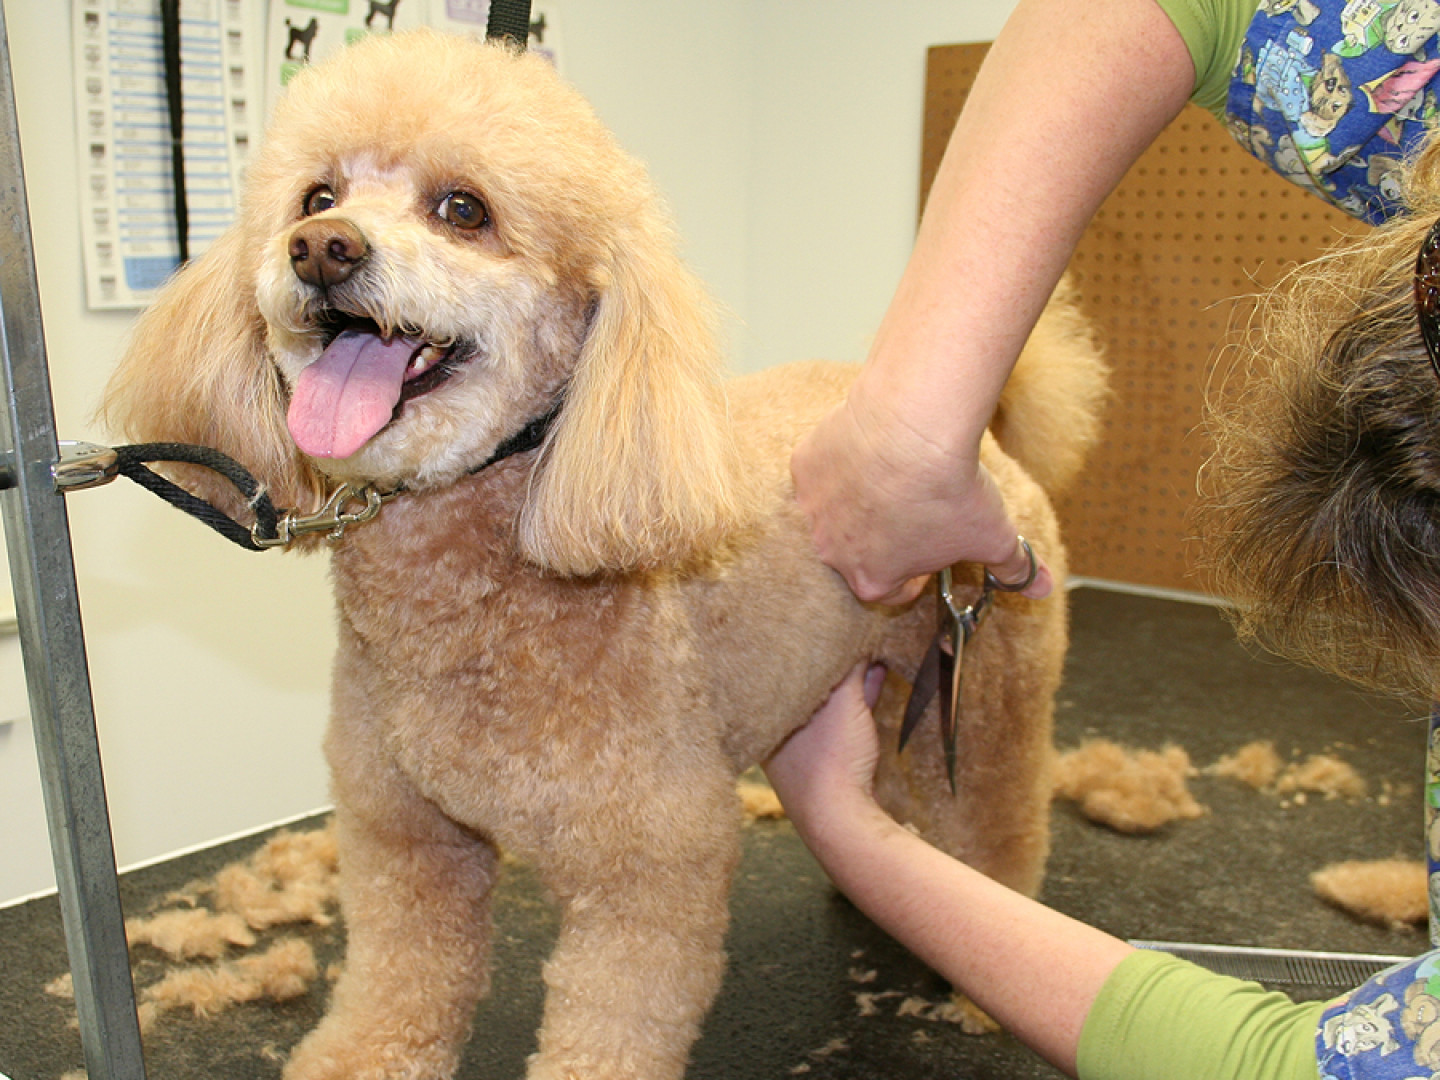 Pet Grooming in South Dartmouth, MA